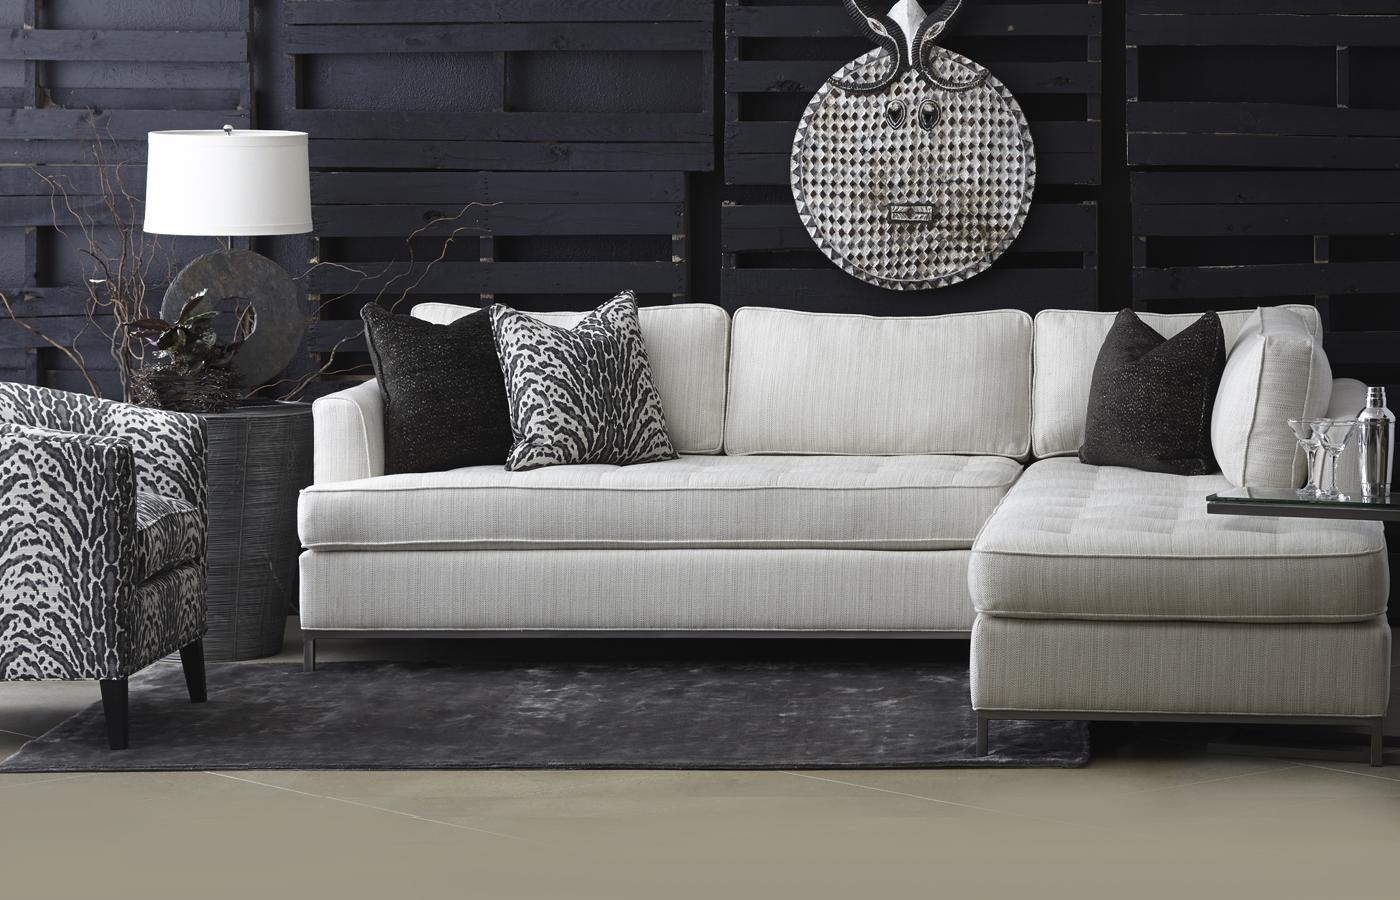 Chair Norwalk Furniture And Design Lexington Kentucky Sofa Chair with regard to Norwalk Sofa And Chairs